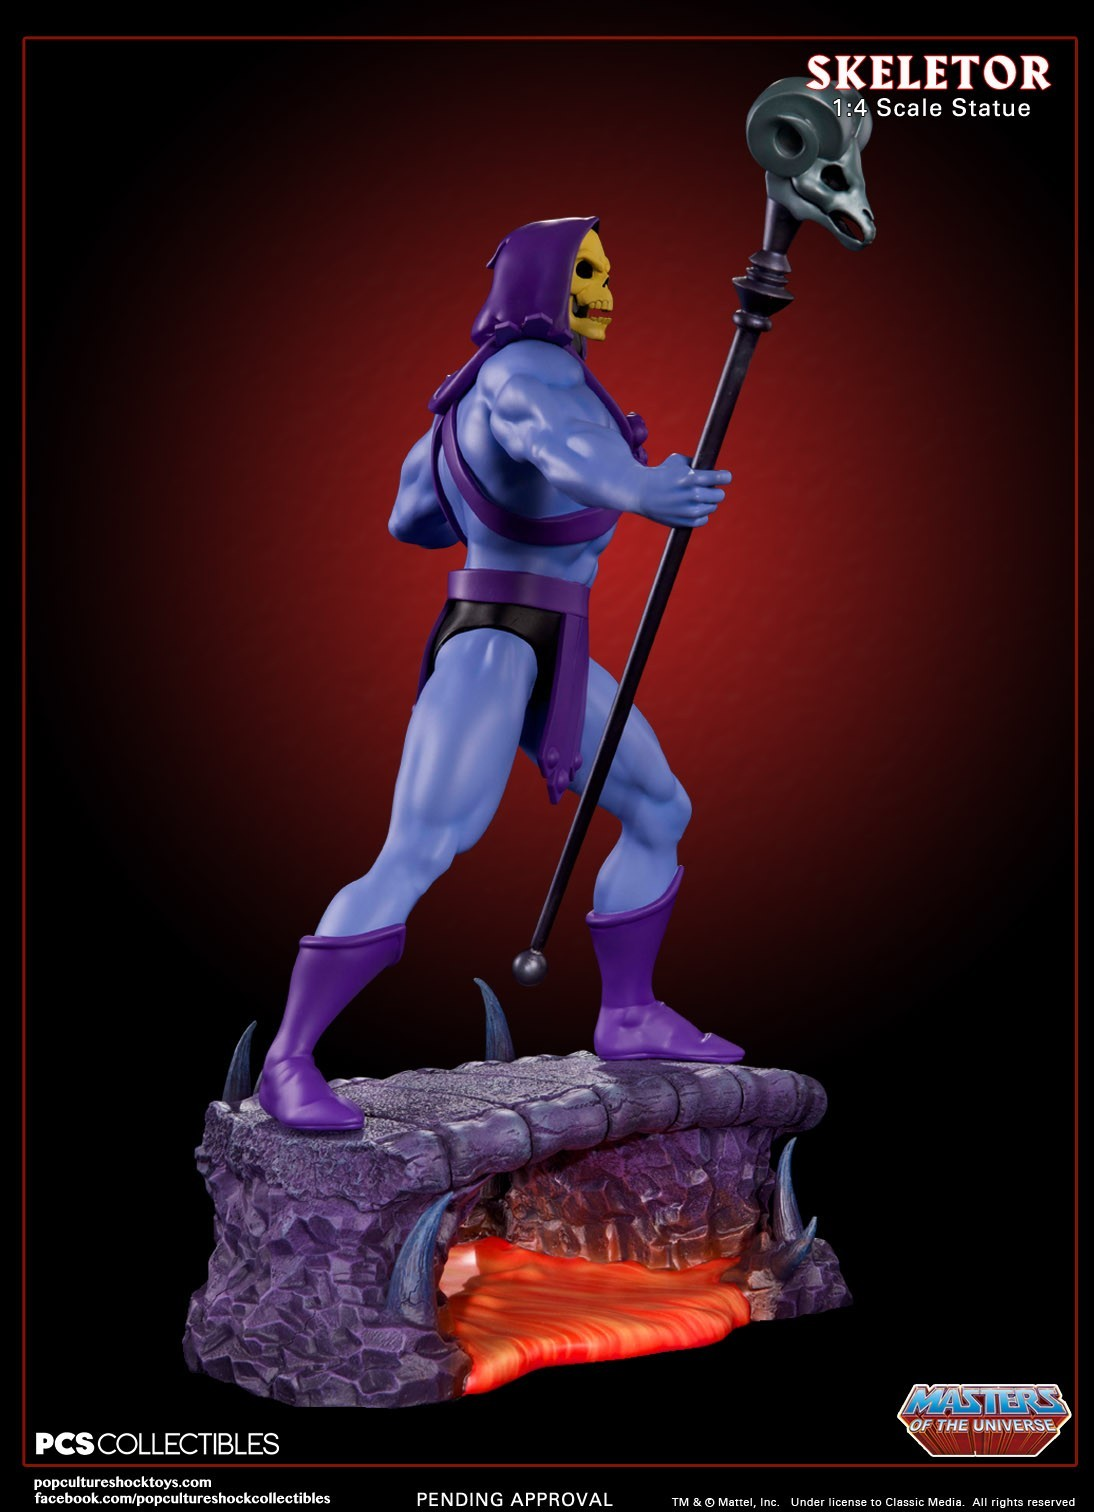 Alejandro pereira skeletor media k 1